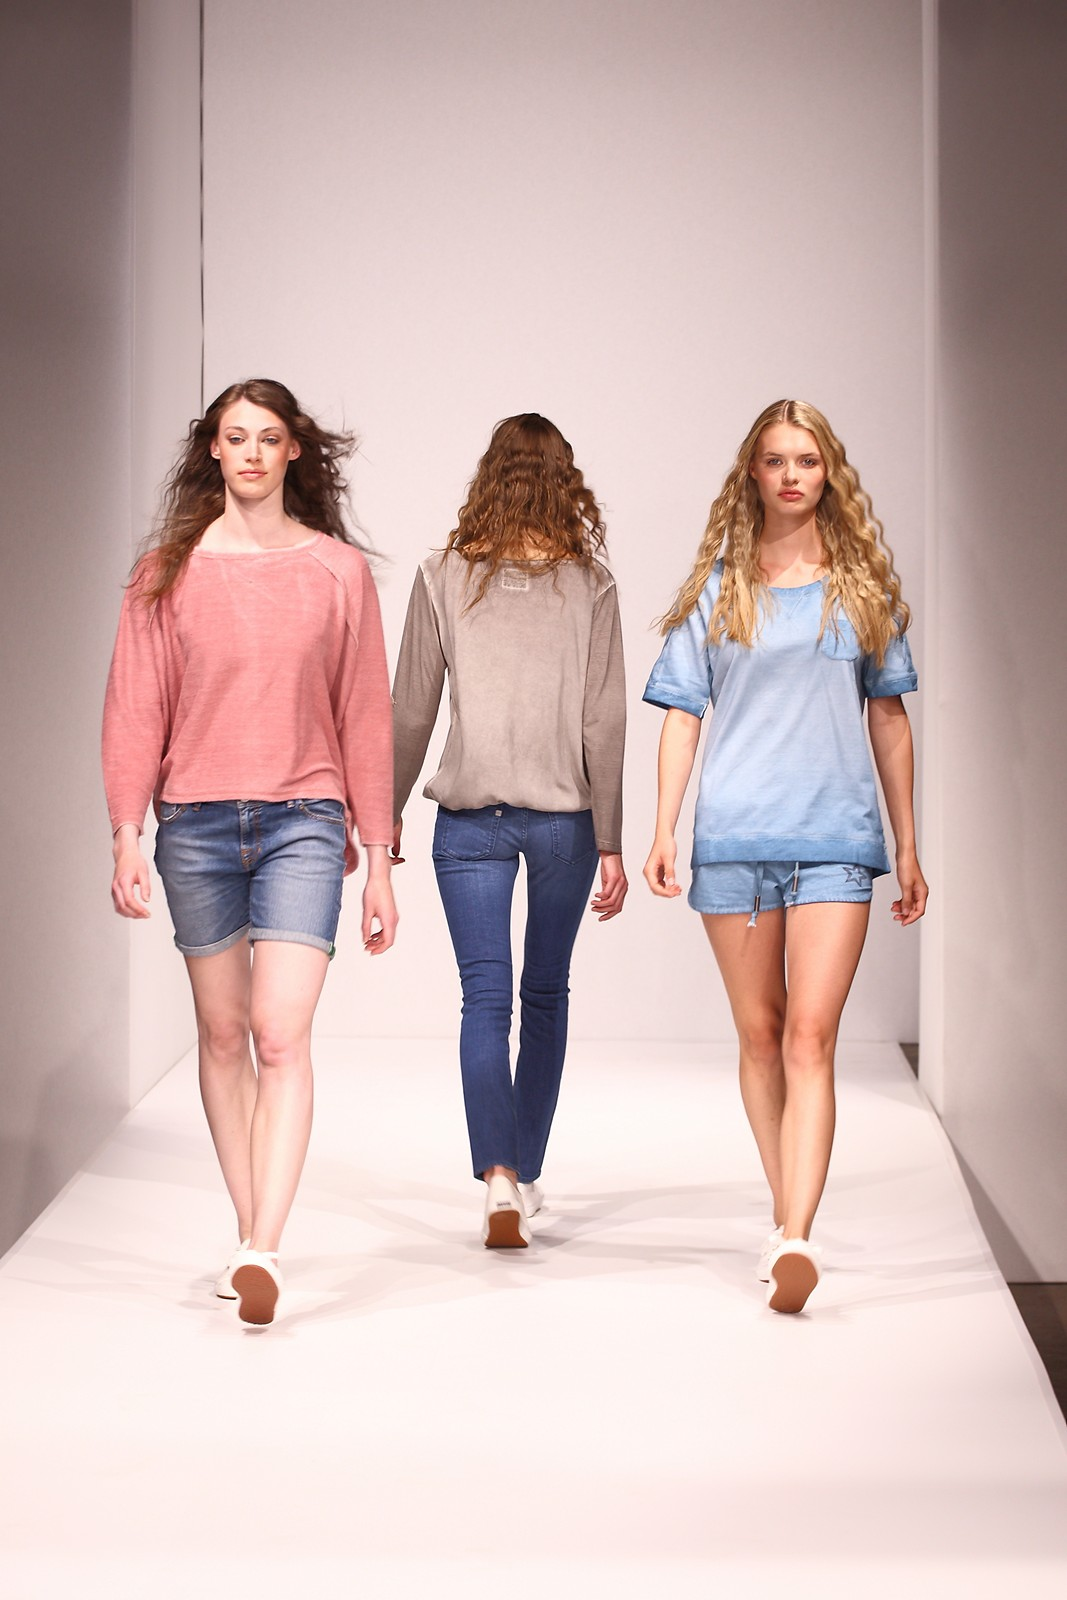 Modenschau Ethical Fashion on Stage 2015